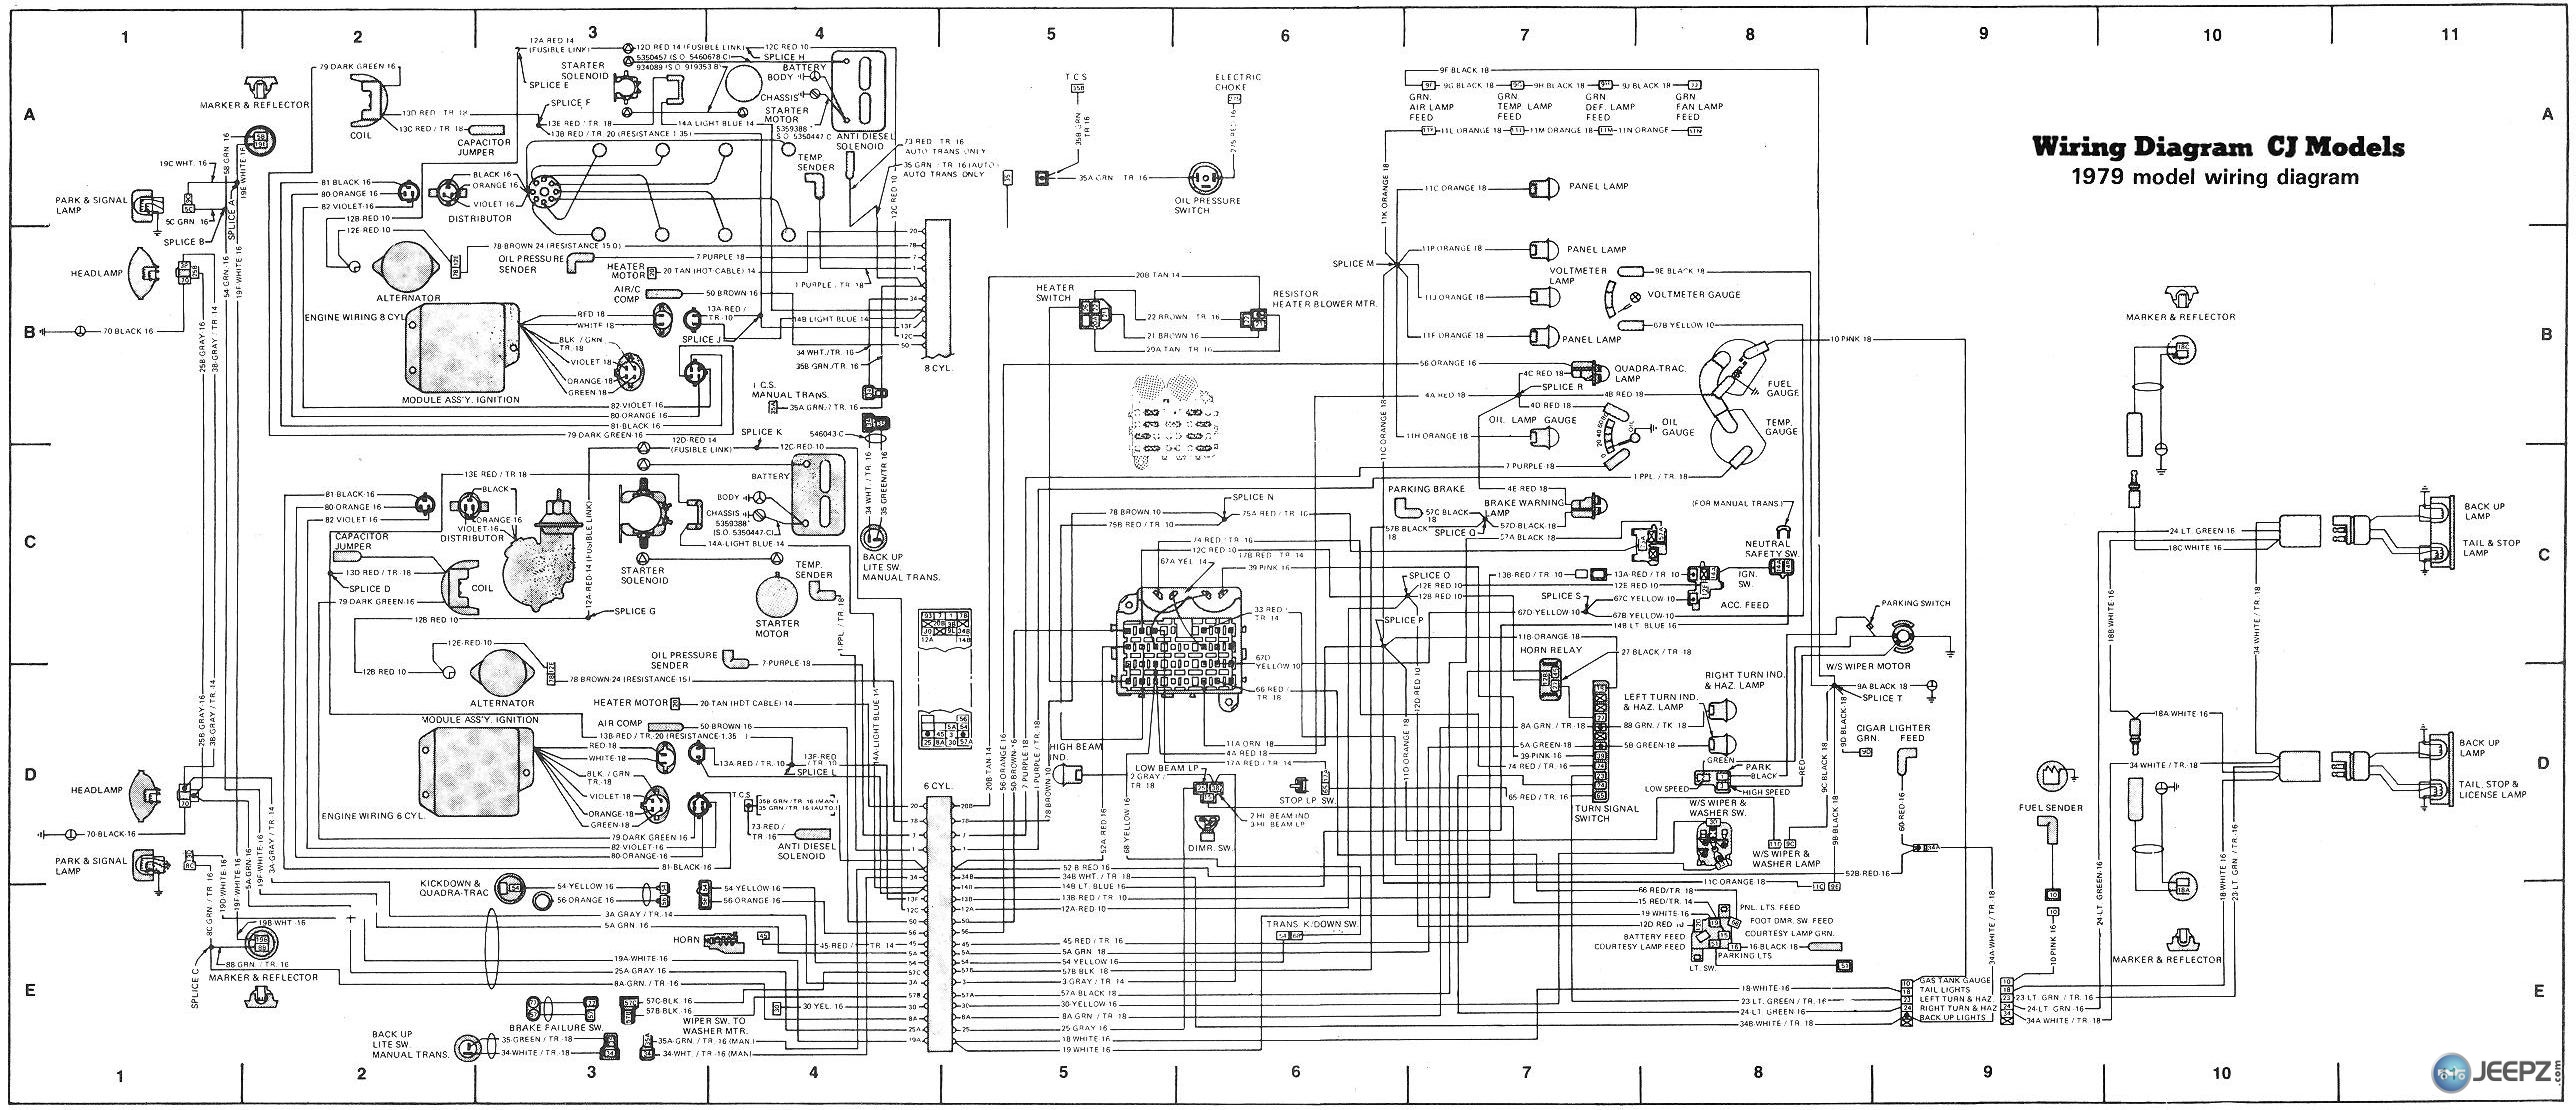 not mj 86 jeep cj7 wire diagram diagram base website wire diagram -  definehrdiagram.inoutlab.it  diagram base website full edition